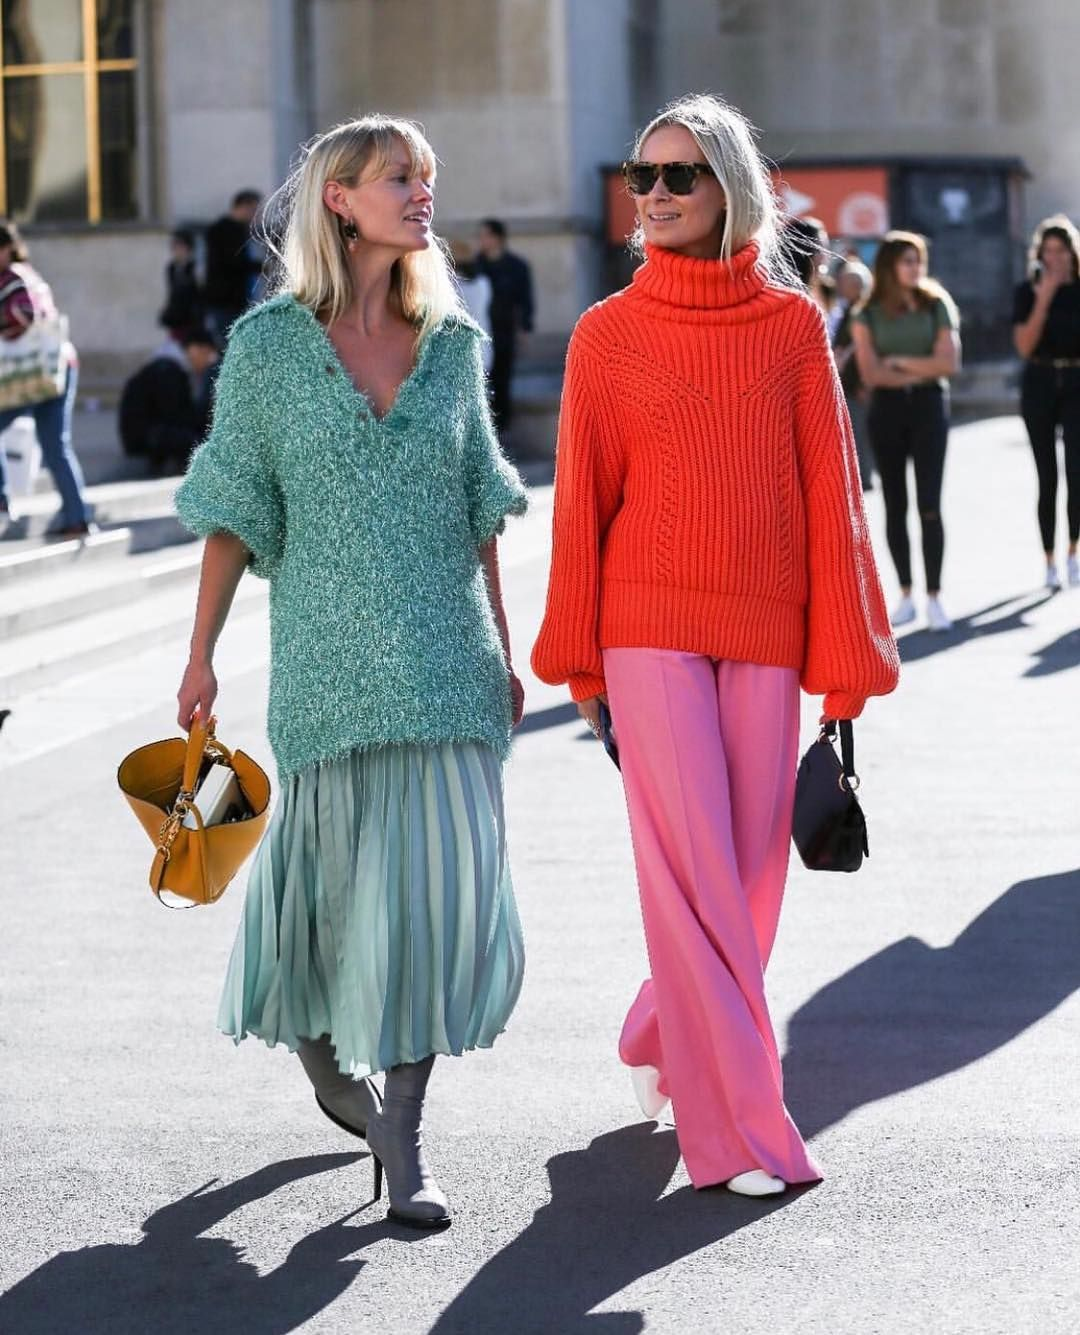 Trend styling: The fashion combination of long sweater and midi skirt can now be seen everywhere